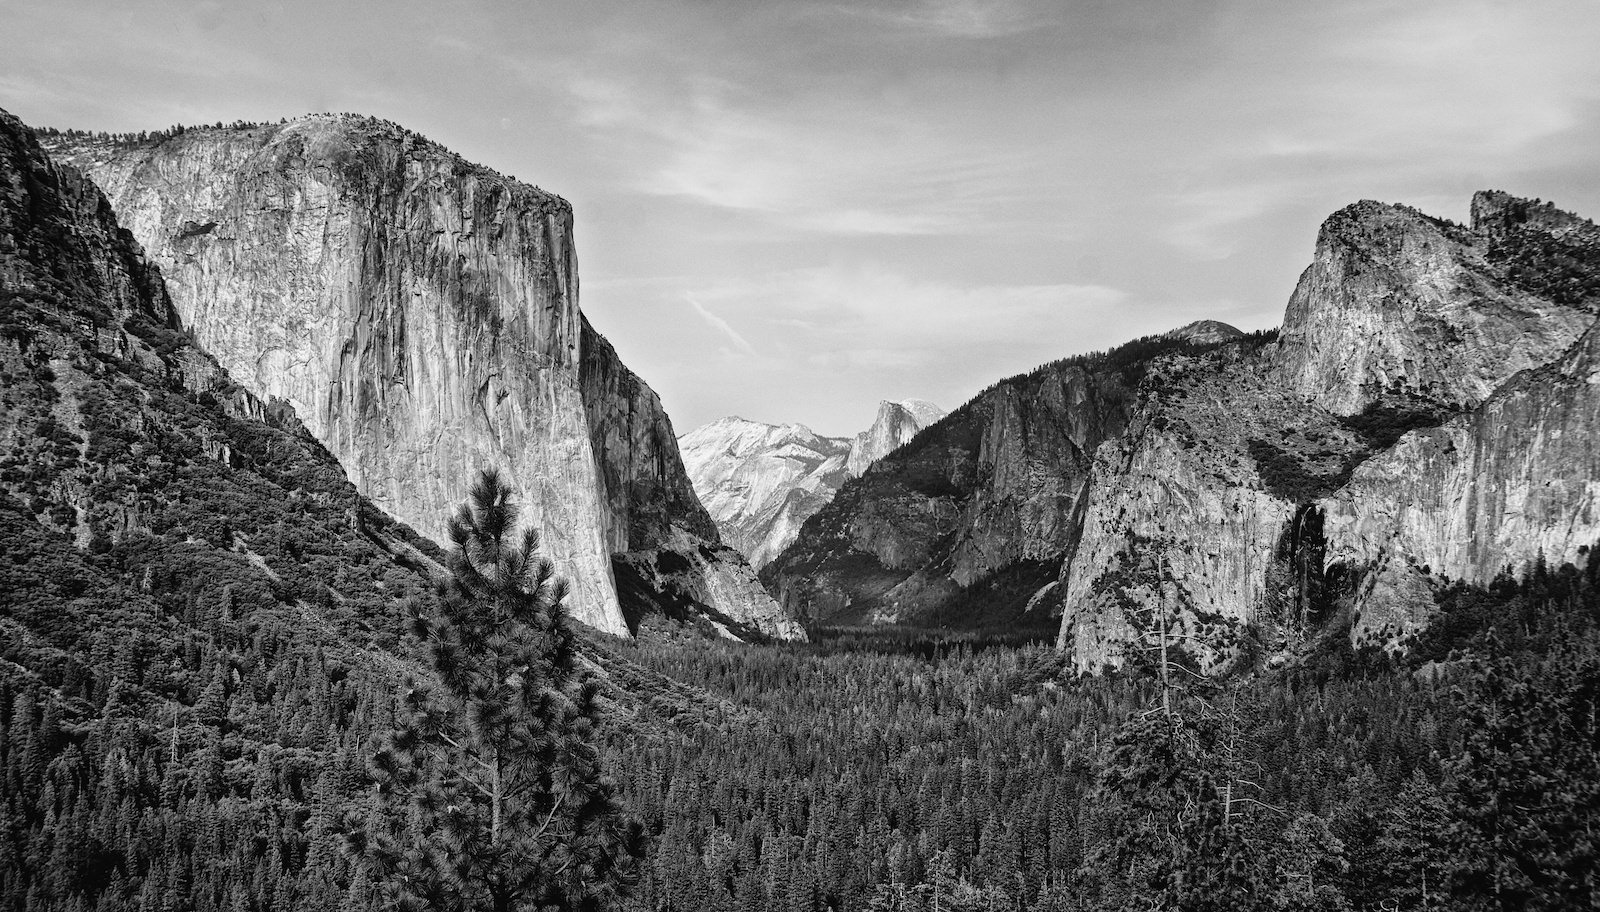 View of Yosemite Valley from El Portal